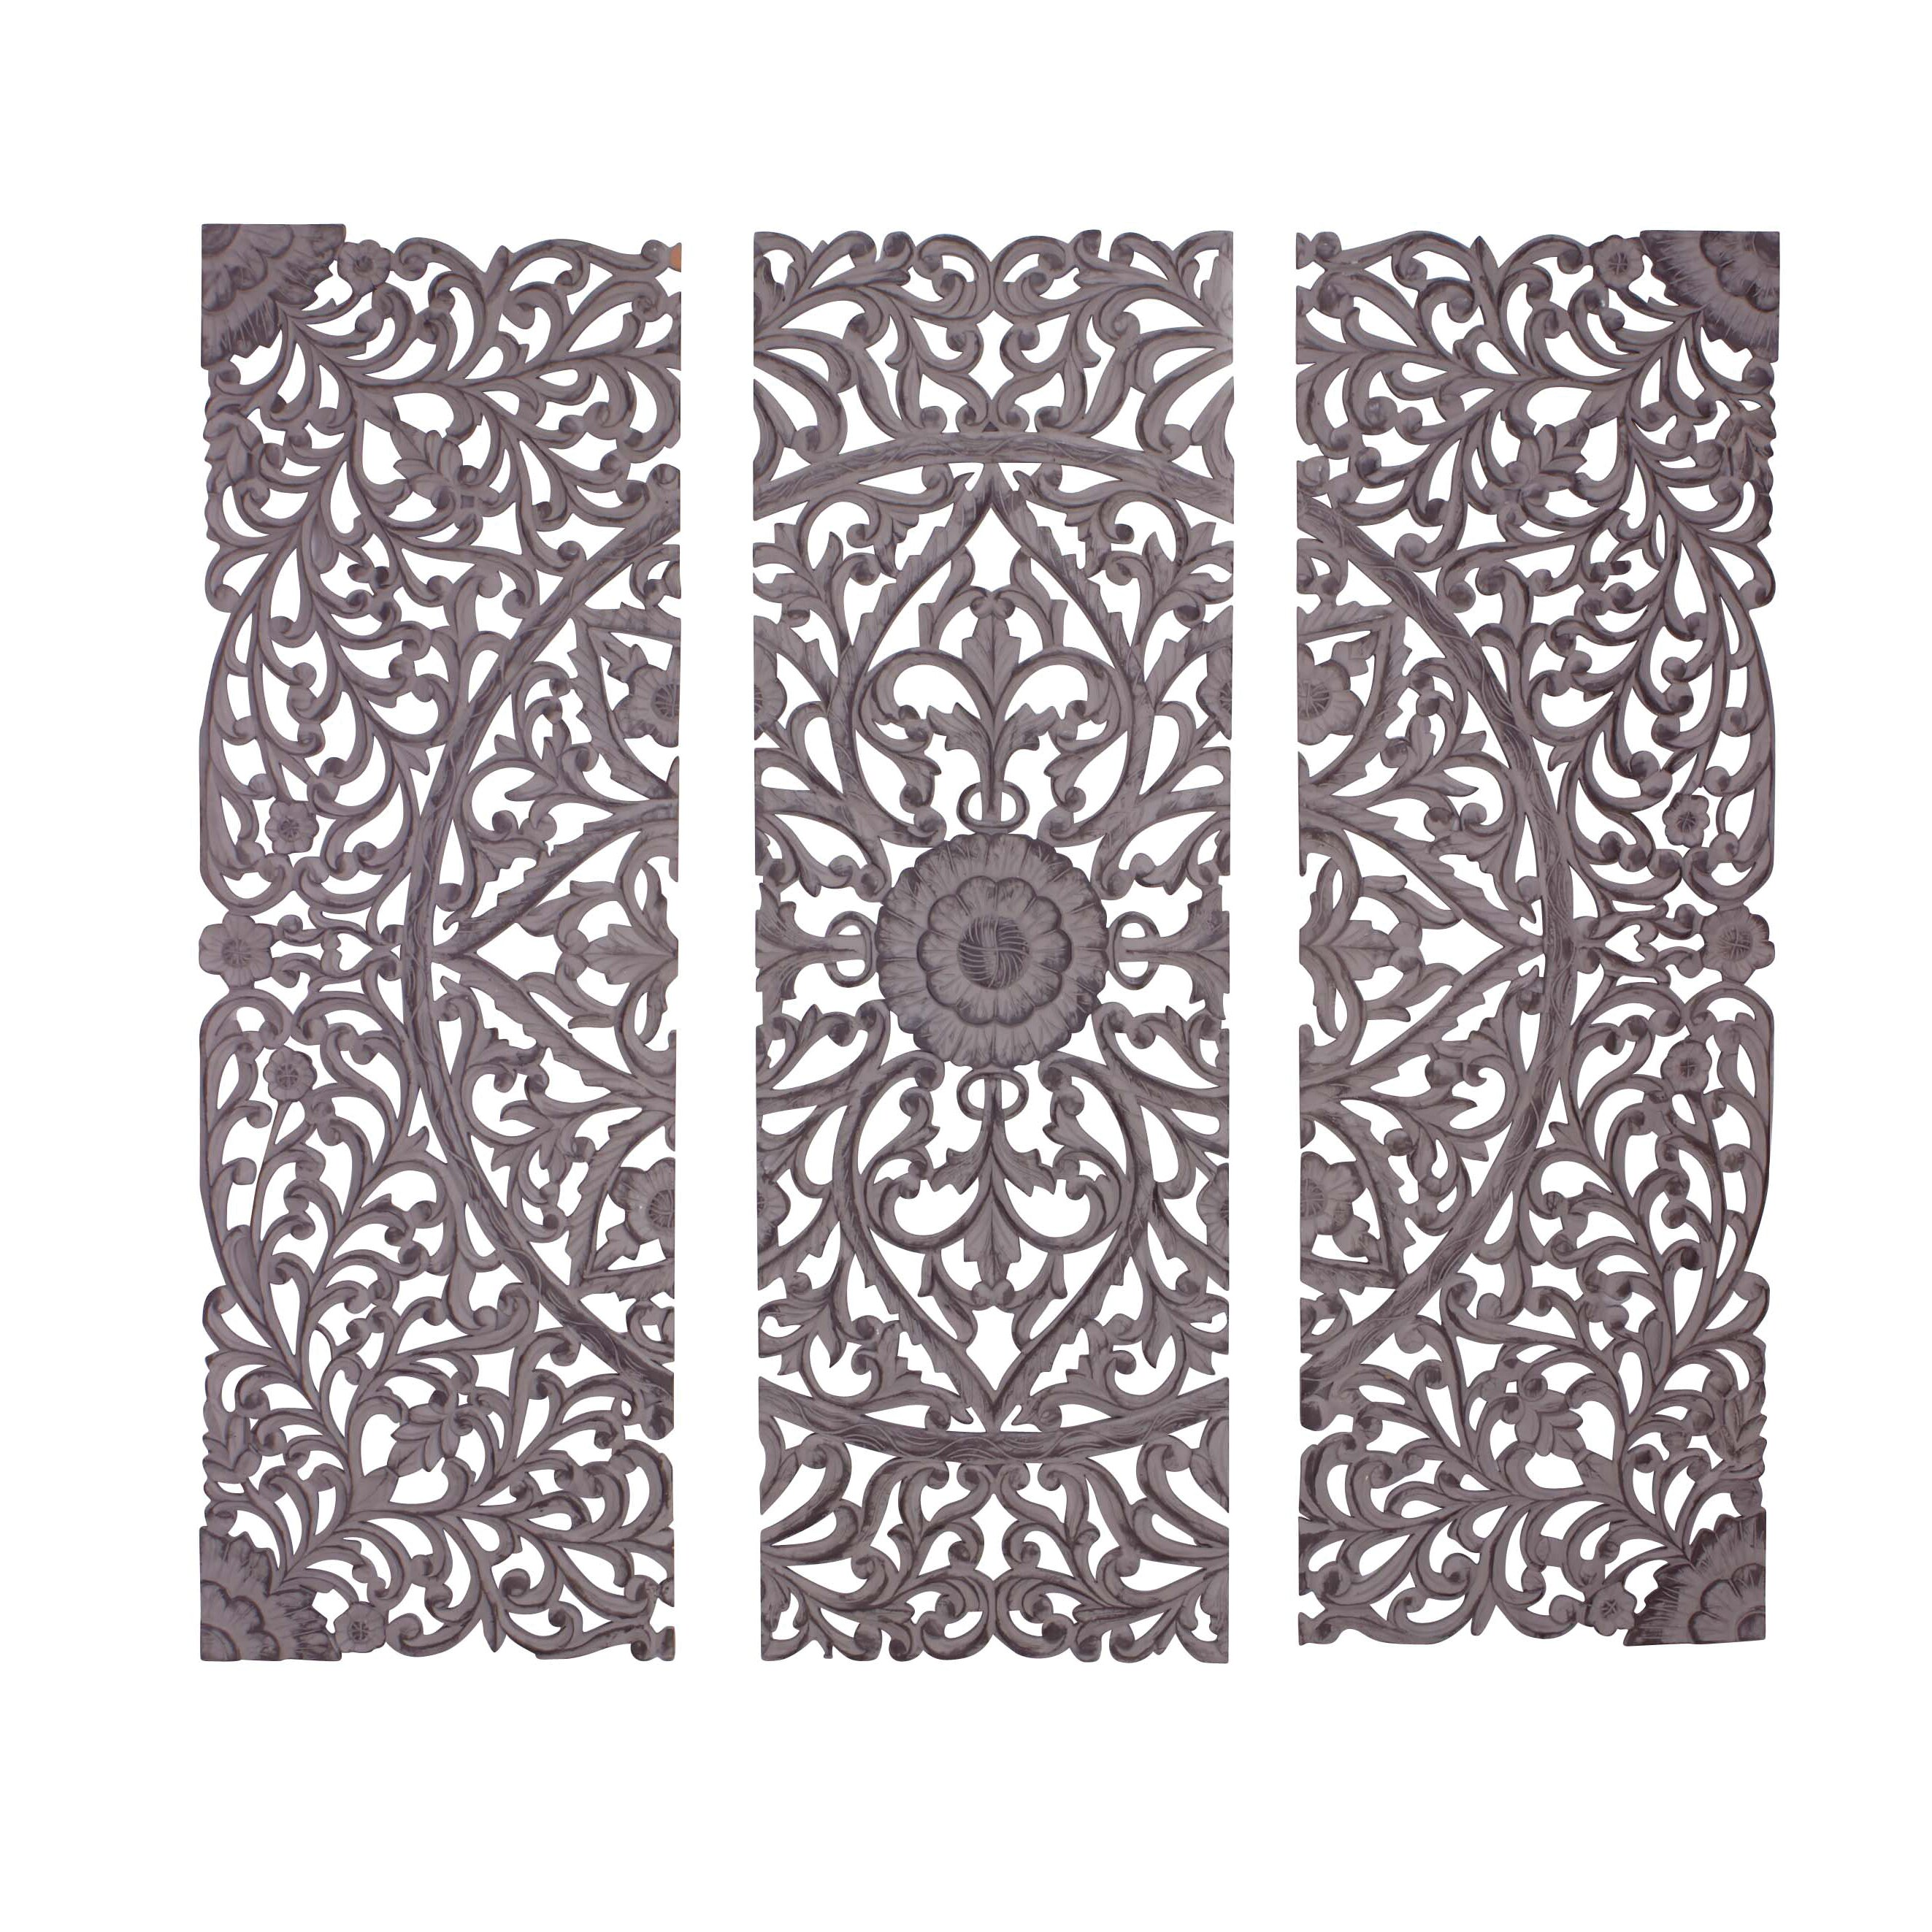 3 piece the must have wood carved panel wall d cor set - Carved wood wall art panels ...